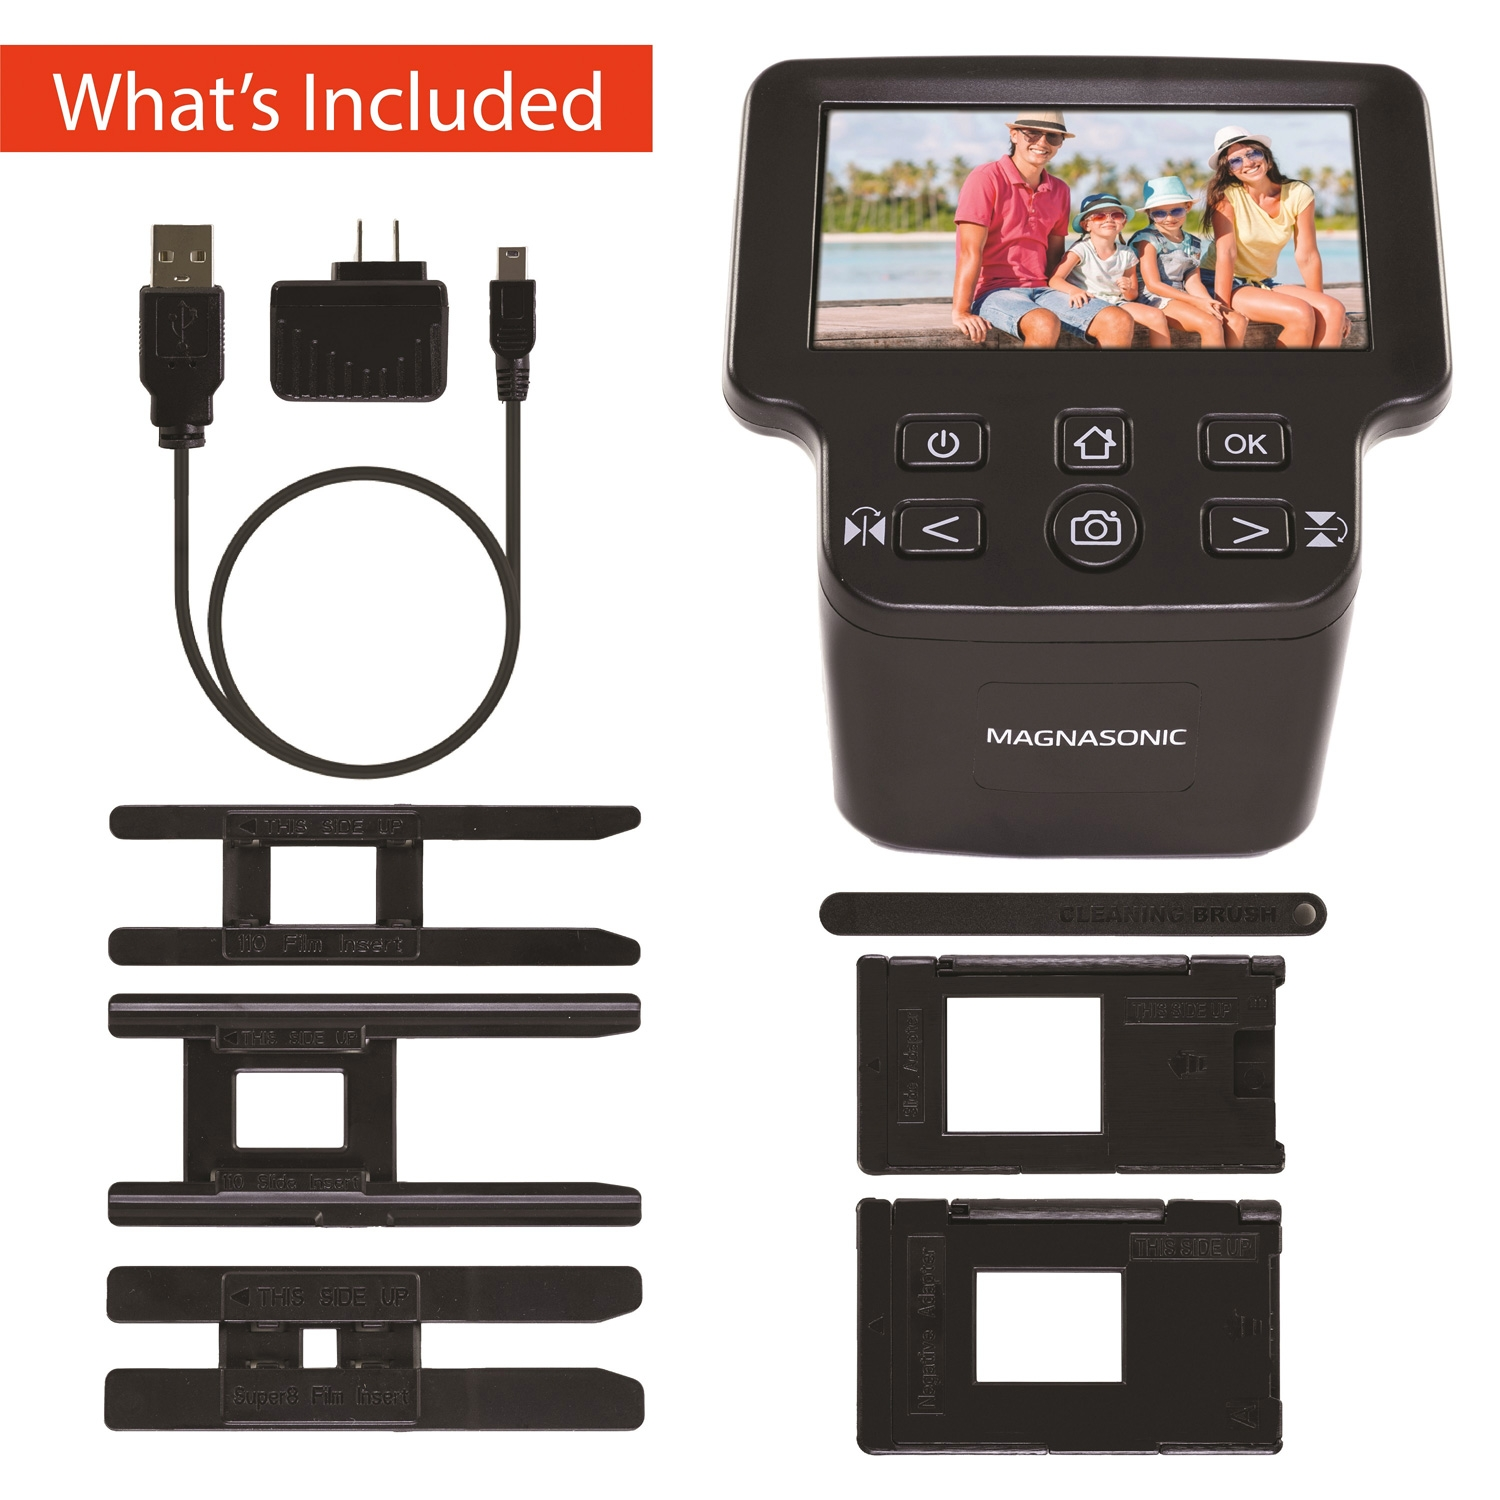 All-In-One 22MP Film Scanner - 5″ Display & HDMI